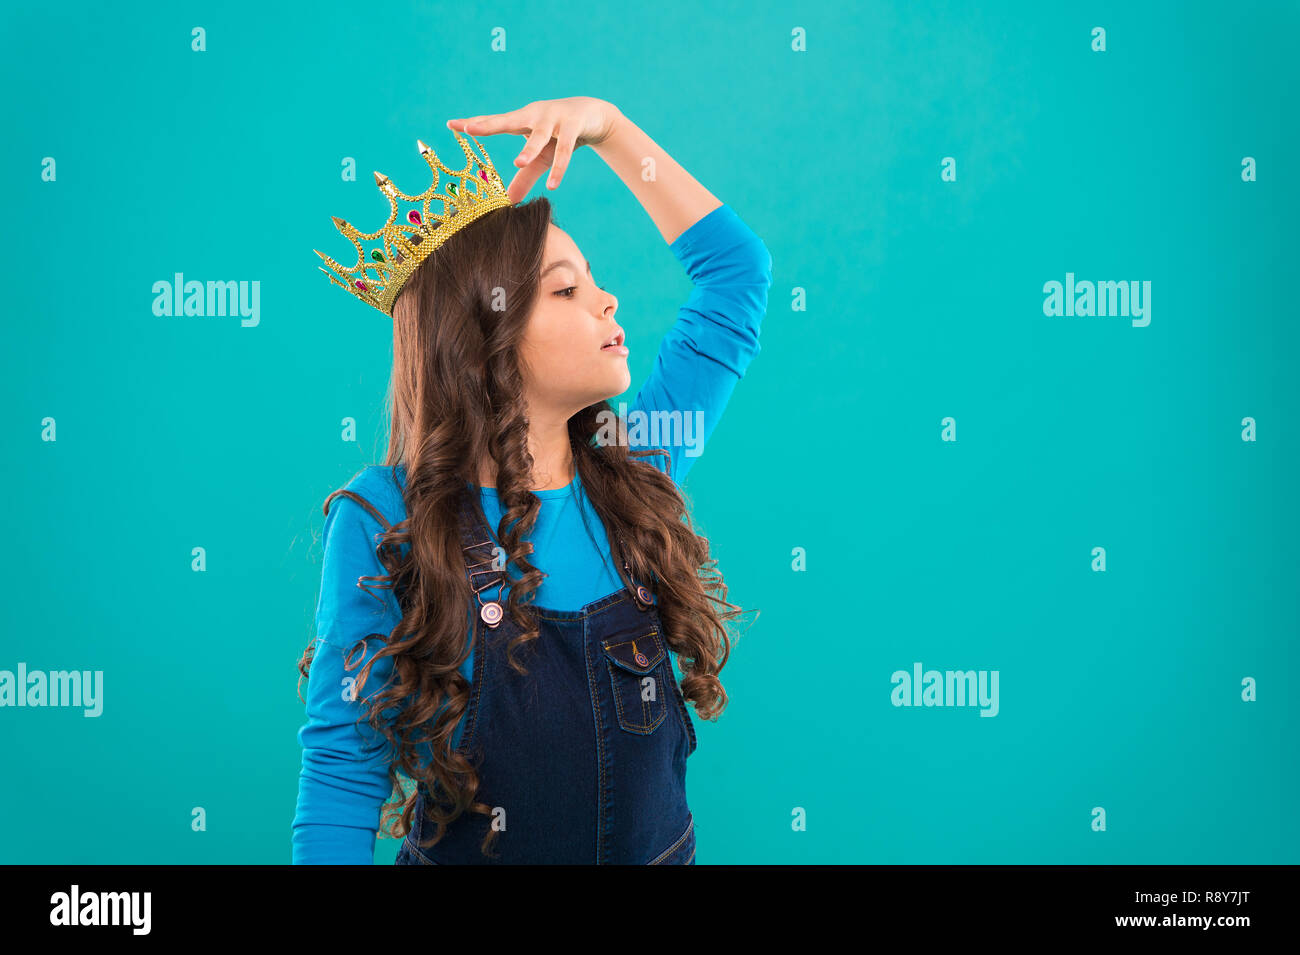 Feels like queen kid wear golden crown symbol of princess every girl dreaming to become princess lady little princess girl cute baby wear crown while